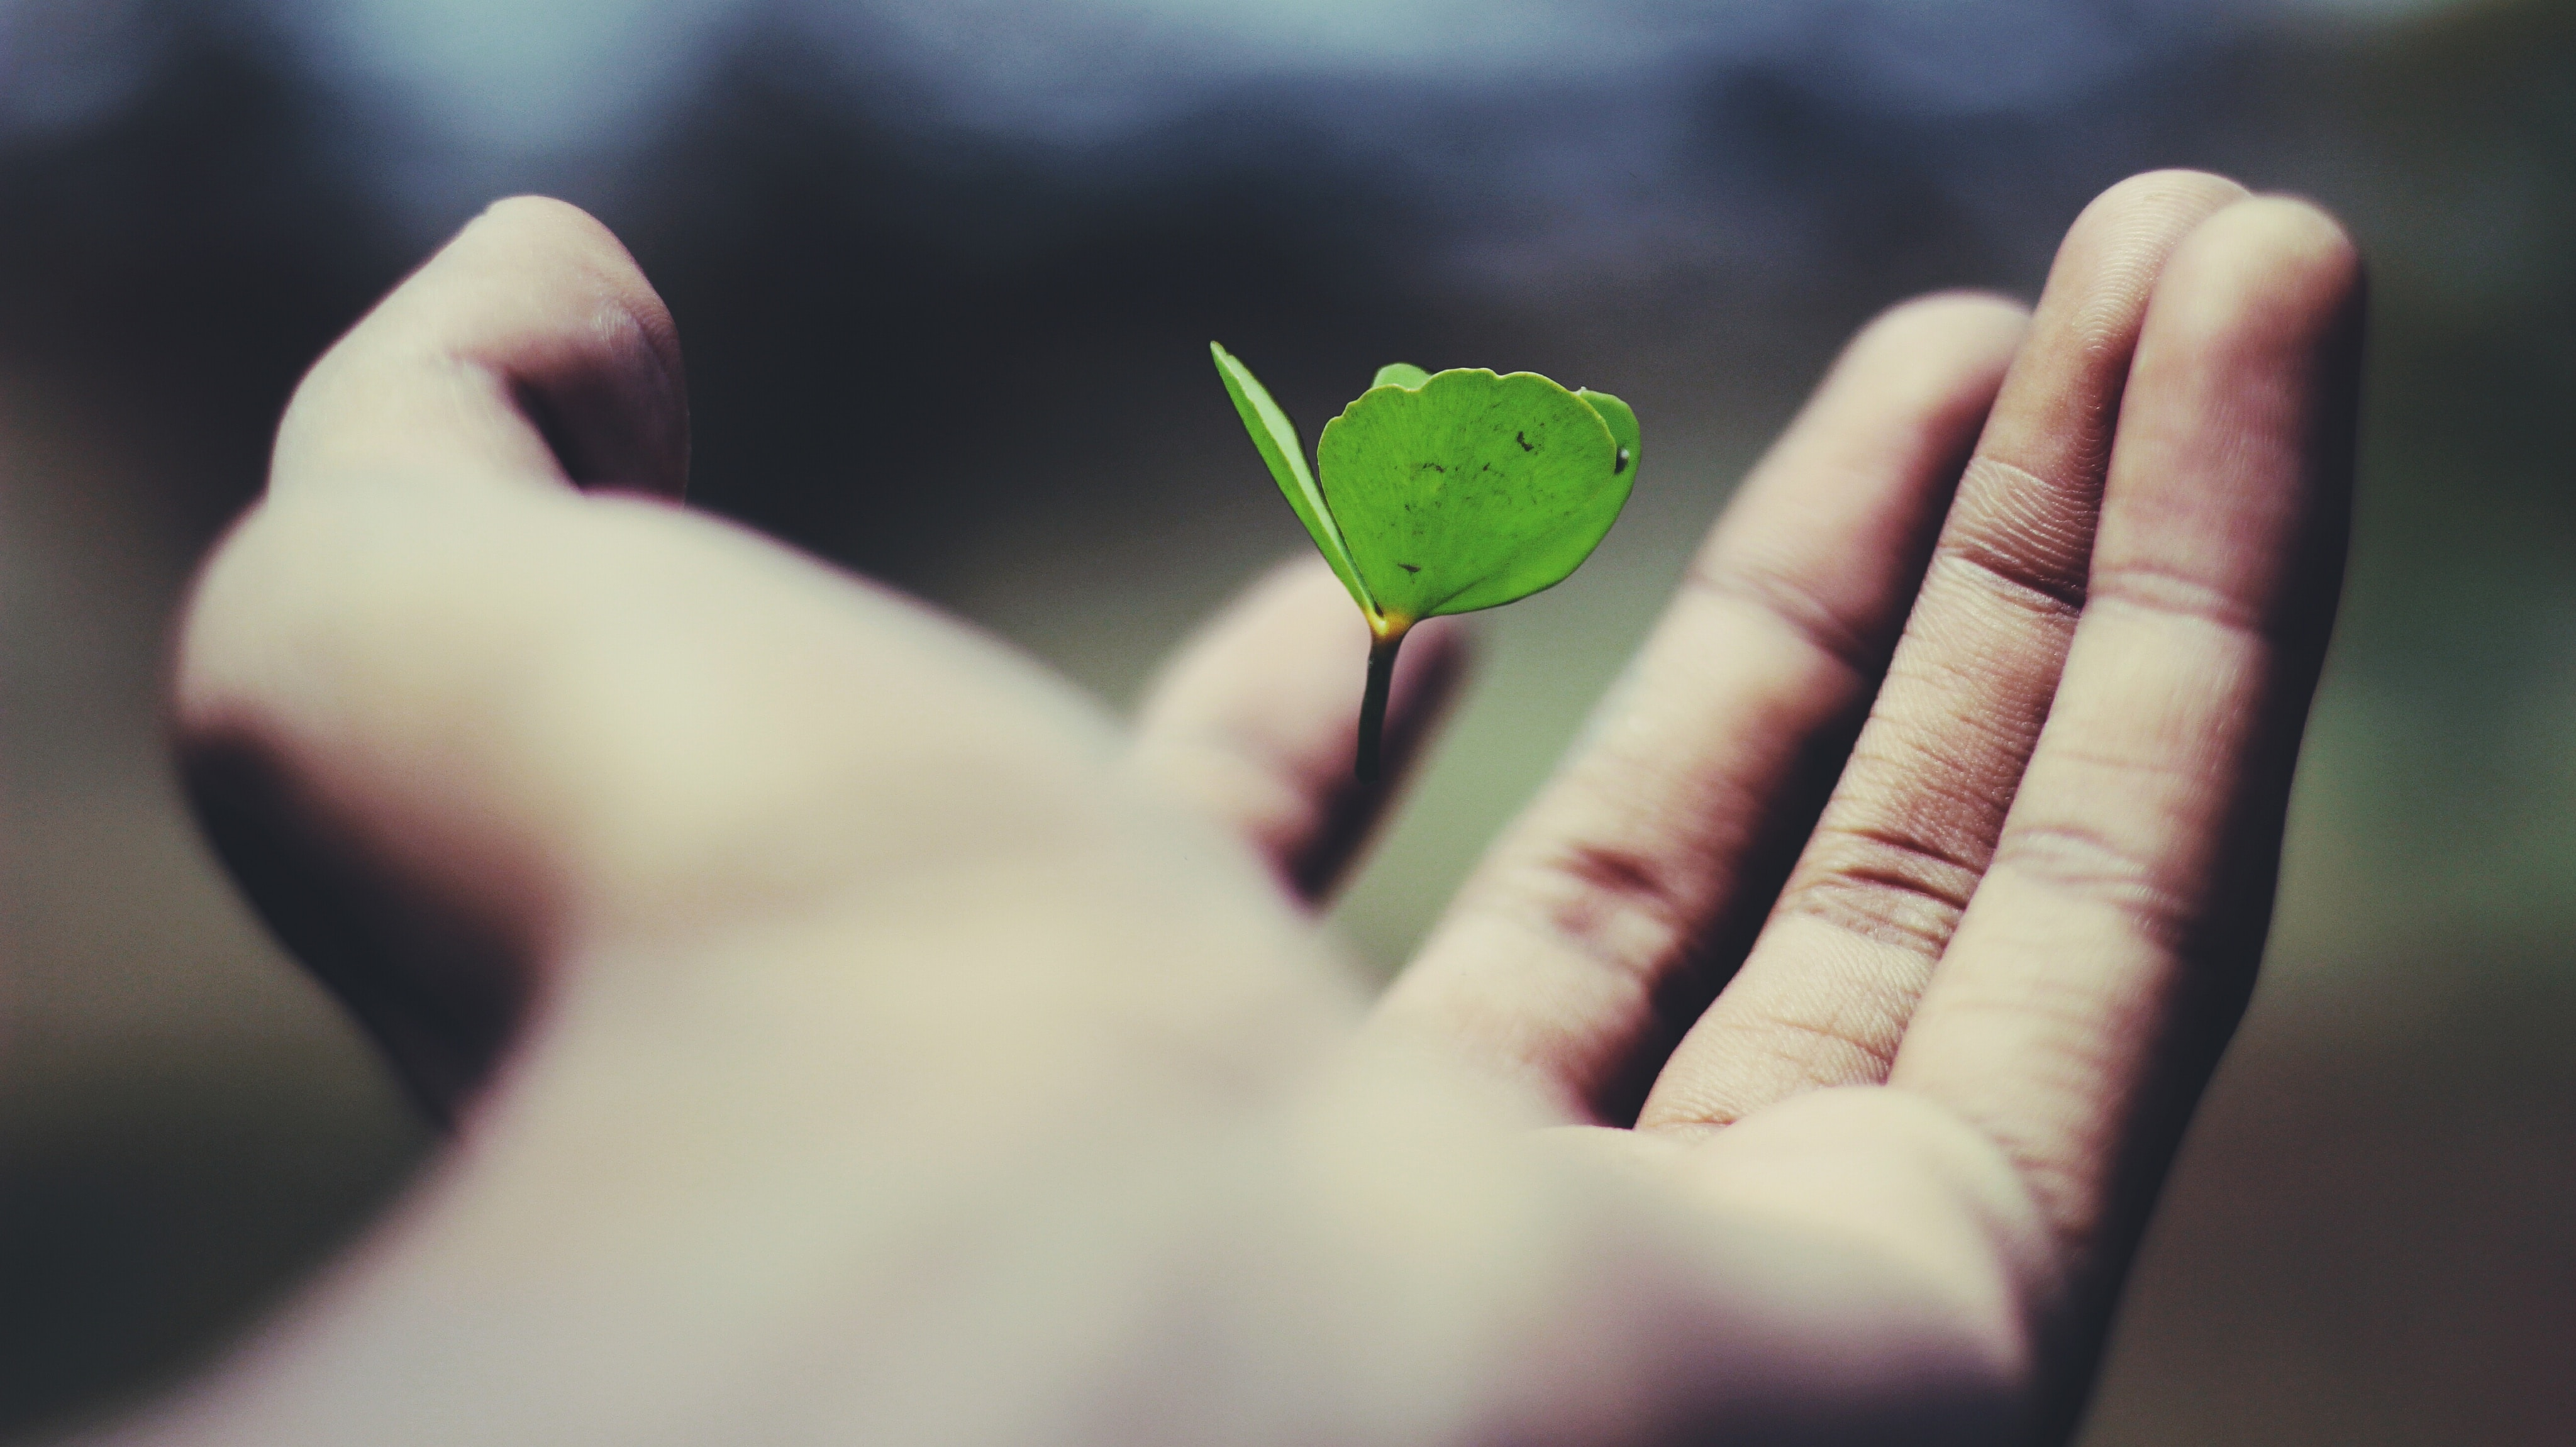 Person holding a floating green plant.